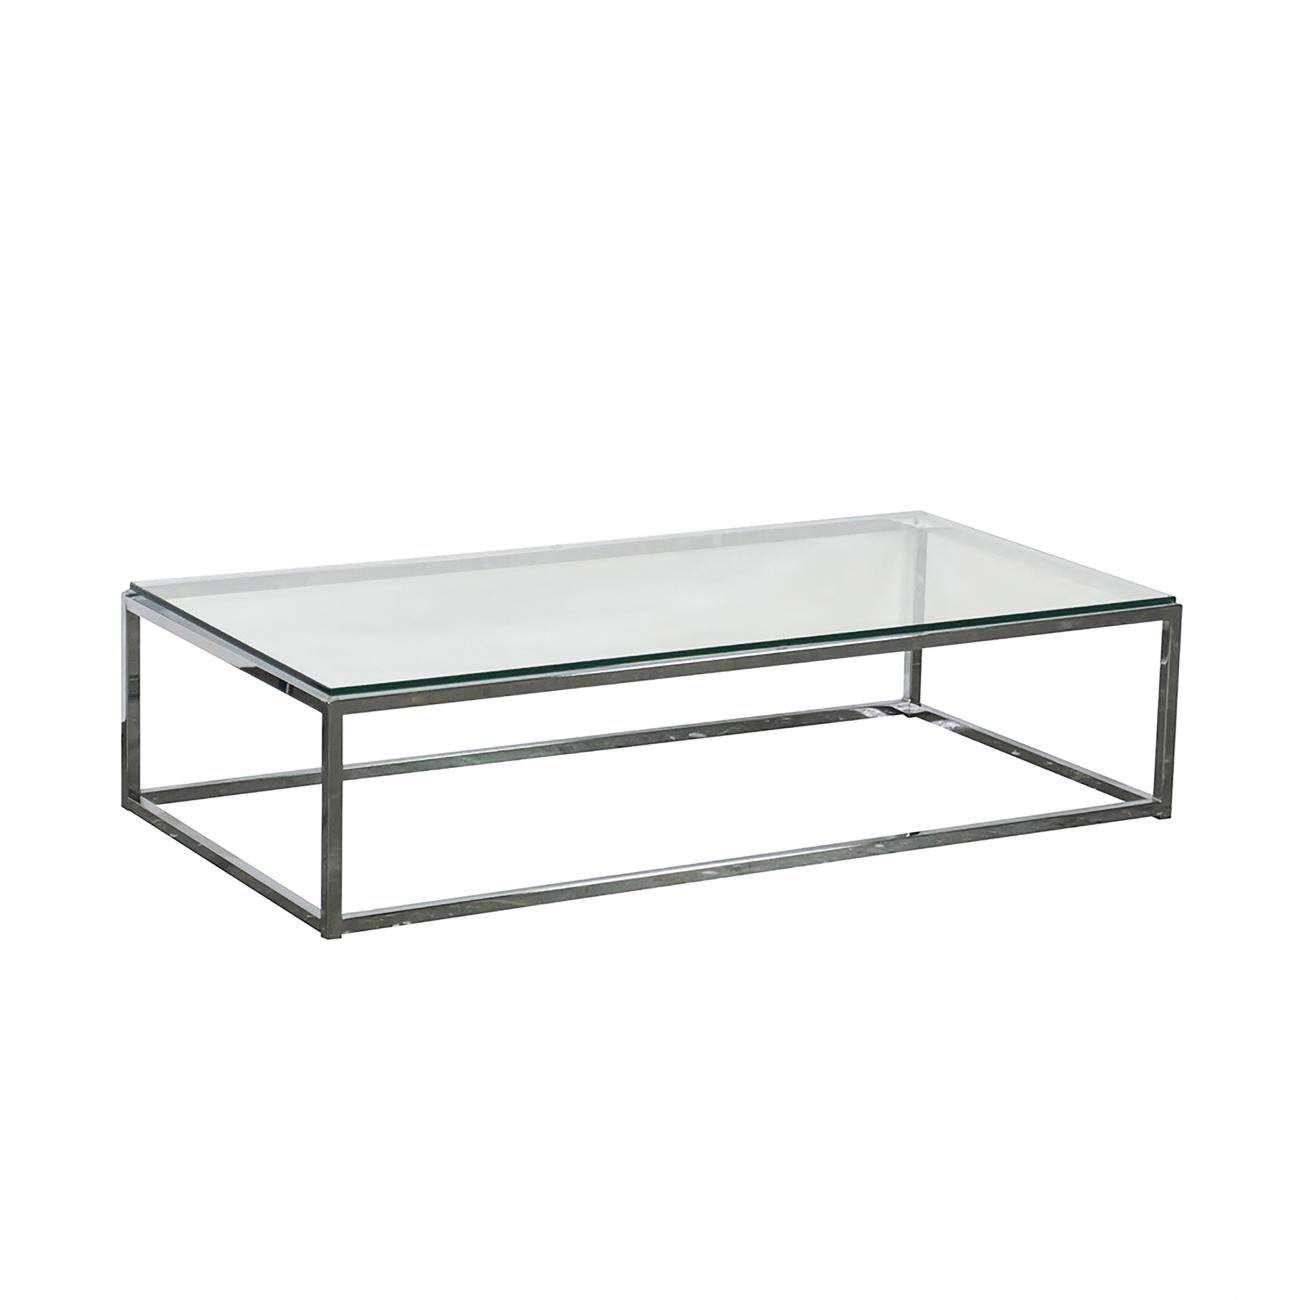 accent pieces peak event services wfrtcchgl glass and chrome coffee table outdoor side aluminum nesting end tables ikea patio umbrella fabric marble white sandy furniture